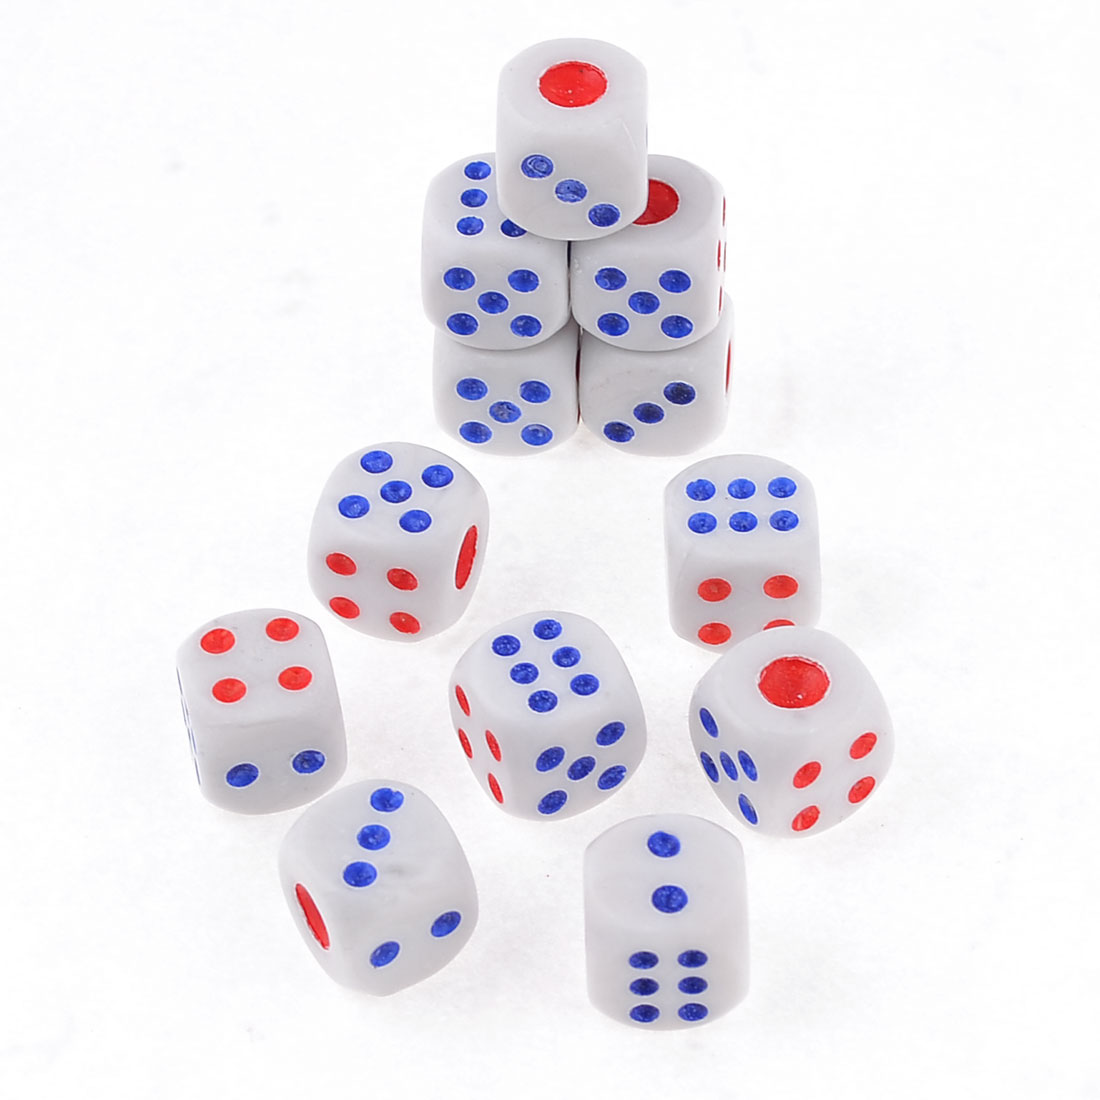 12 Pcs Blue White Red Plastic Gaming Casino Dices